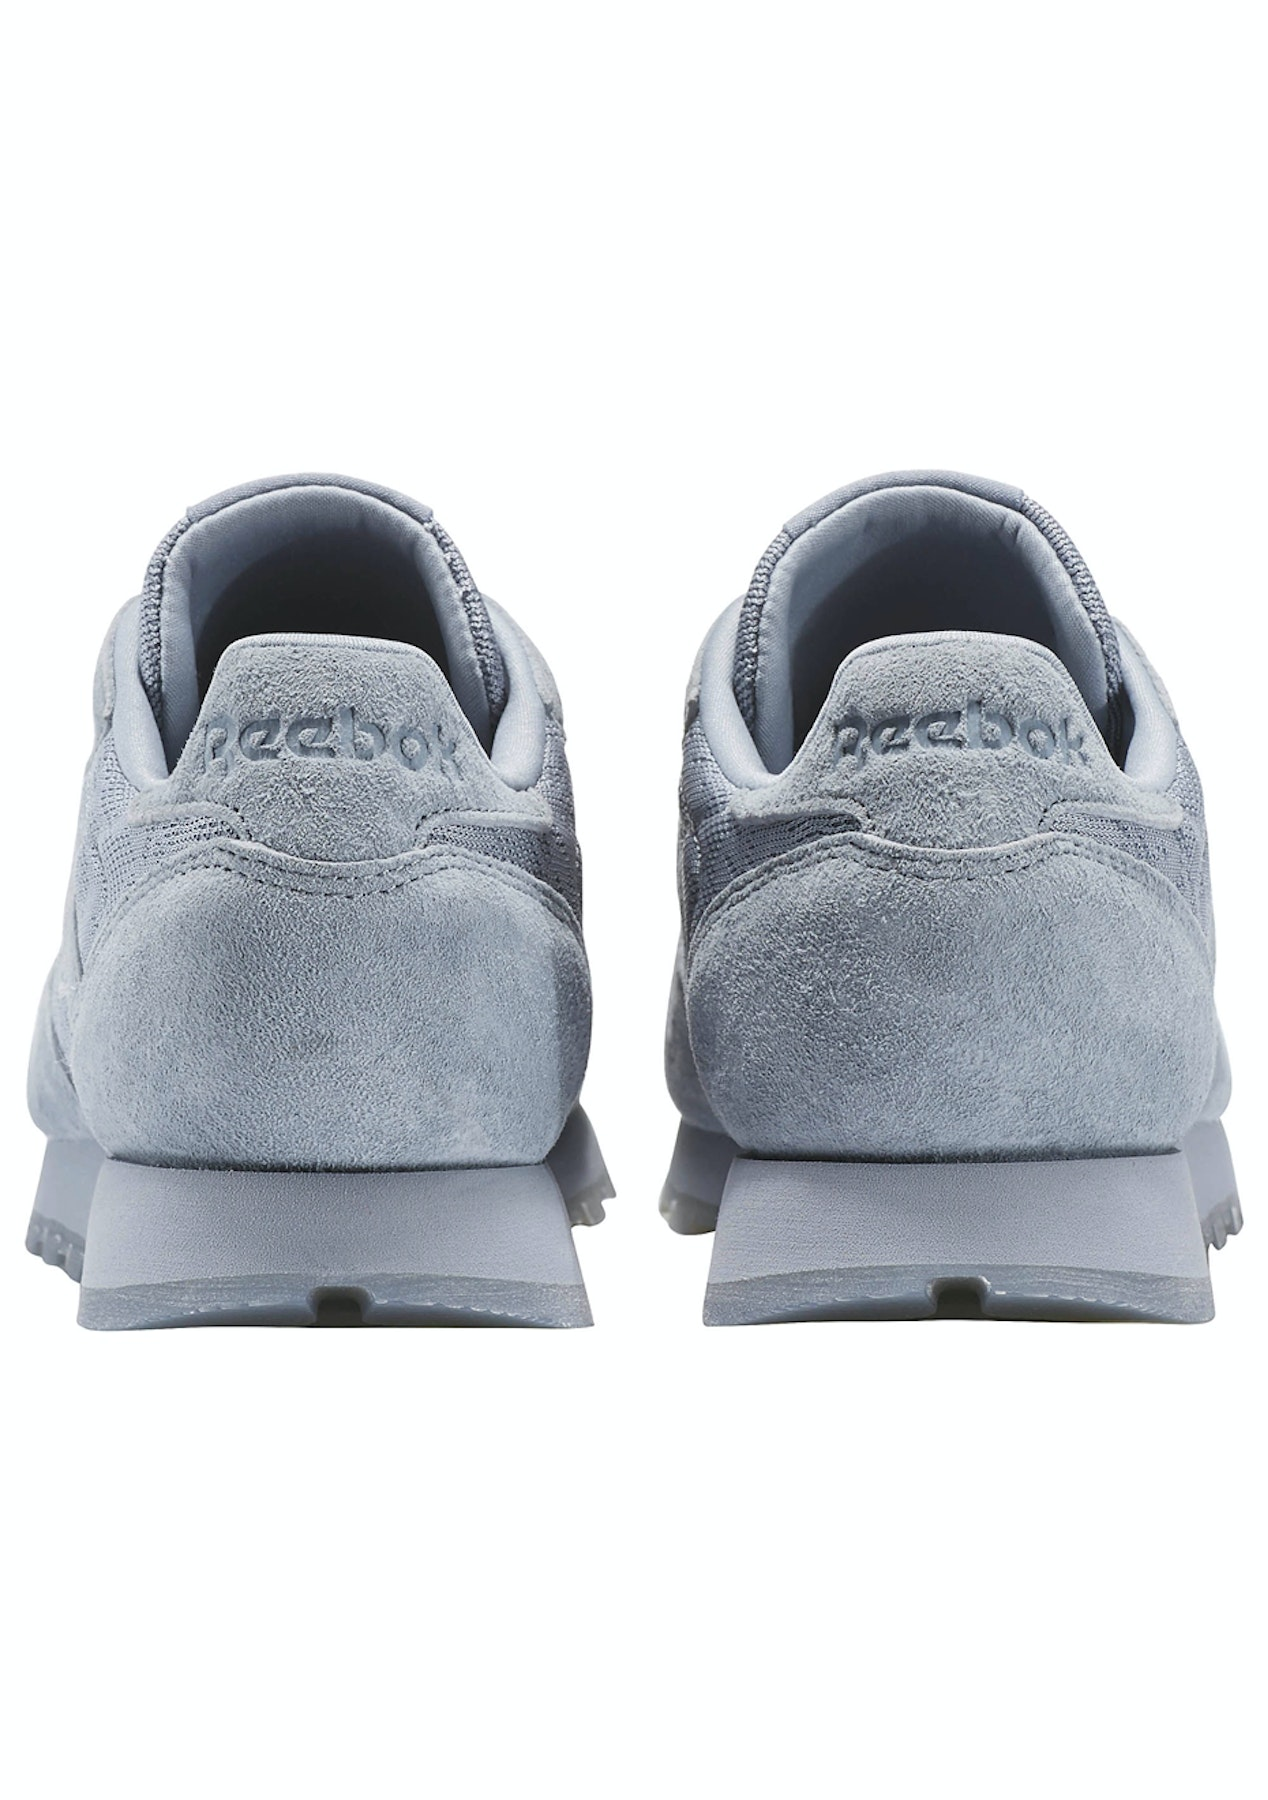 89a10b165ea Reebok Womens - Classic Leather Lace Meteor Grey White - 50% Off Reebok -  Onceit